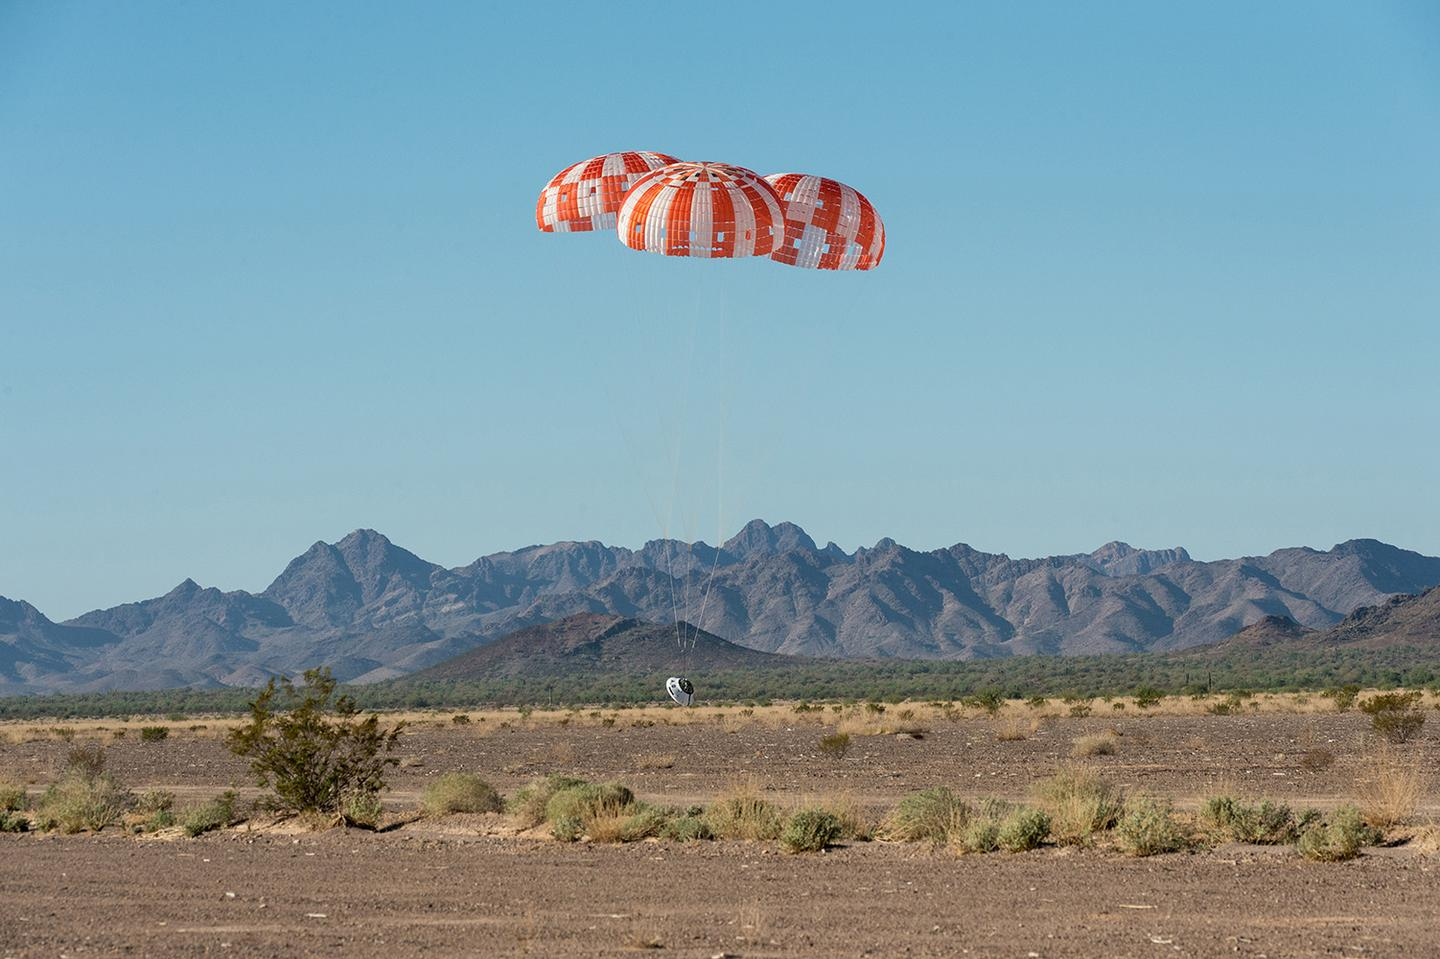 An Orion test capsule with its three main parachutes touches down in the Arizona desert on September 12, 2018